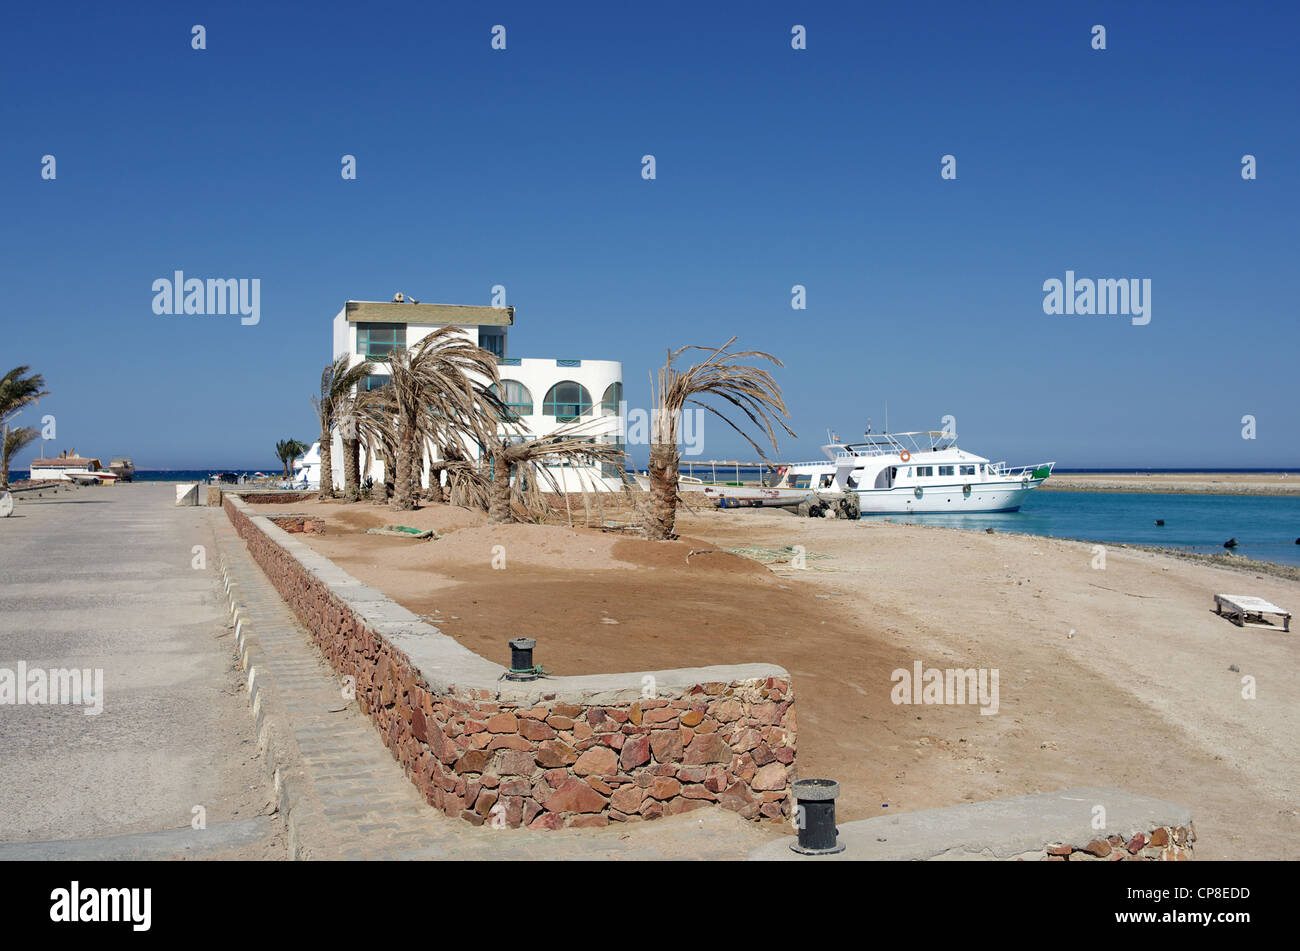 Dried and wilted a group of palm trees stand decimated by drought on the coast of the Red Sea, white ship. Hurghada, - Stock Image